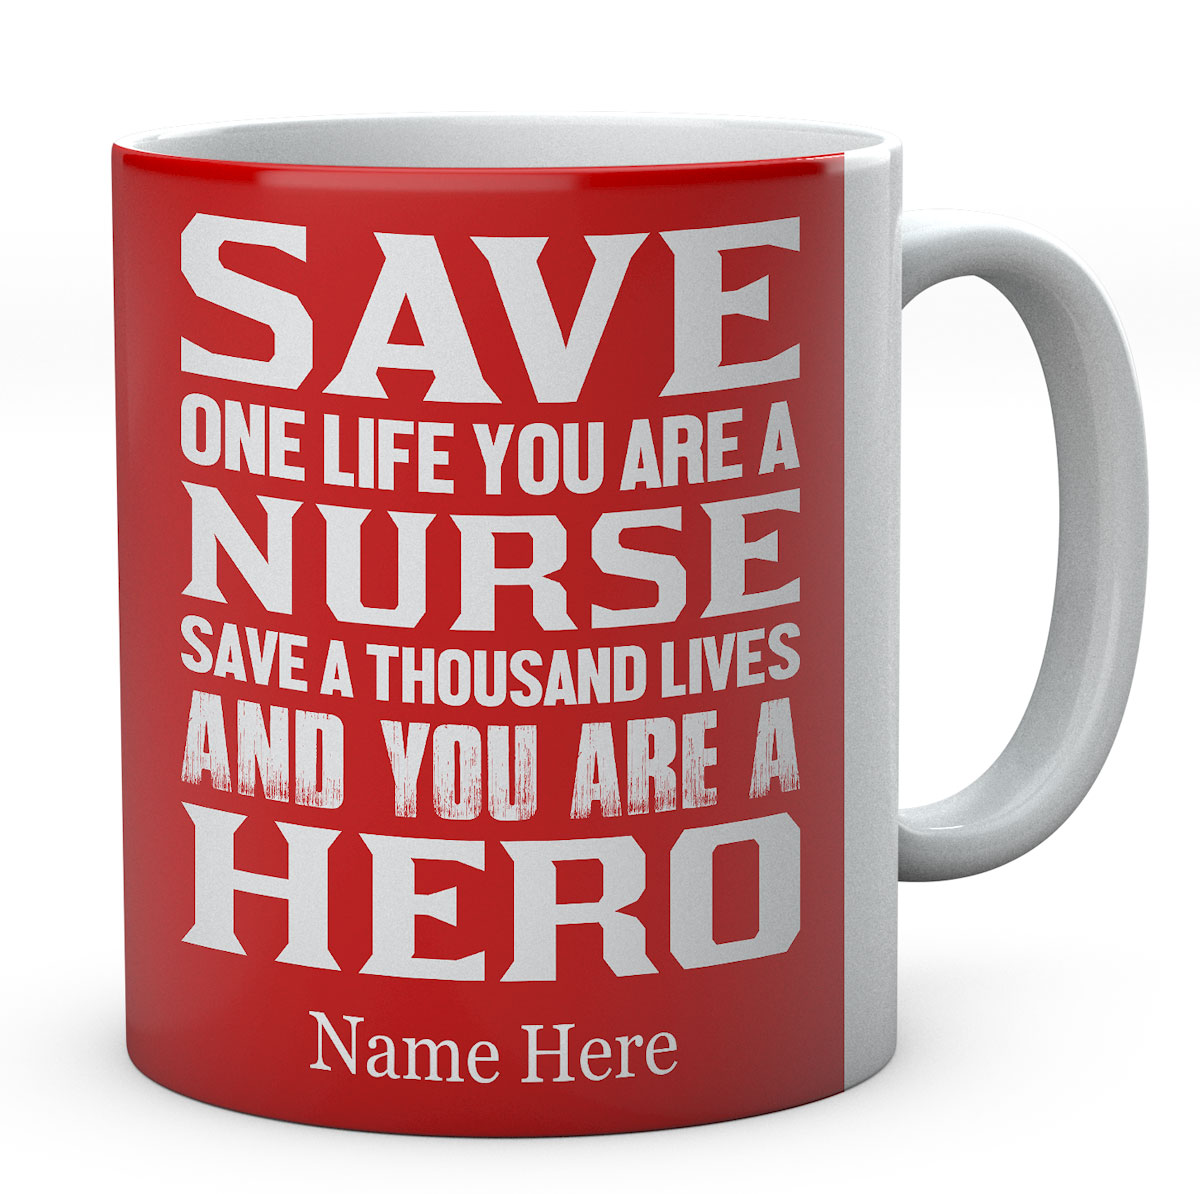 Personalised Save One Life You Are A Nurse Save A Thousand Lives And You Are A Hero Mug